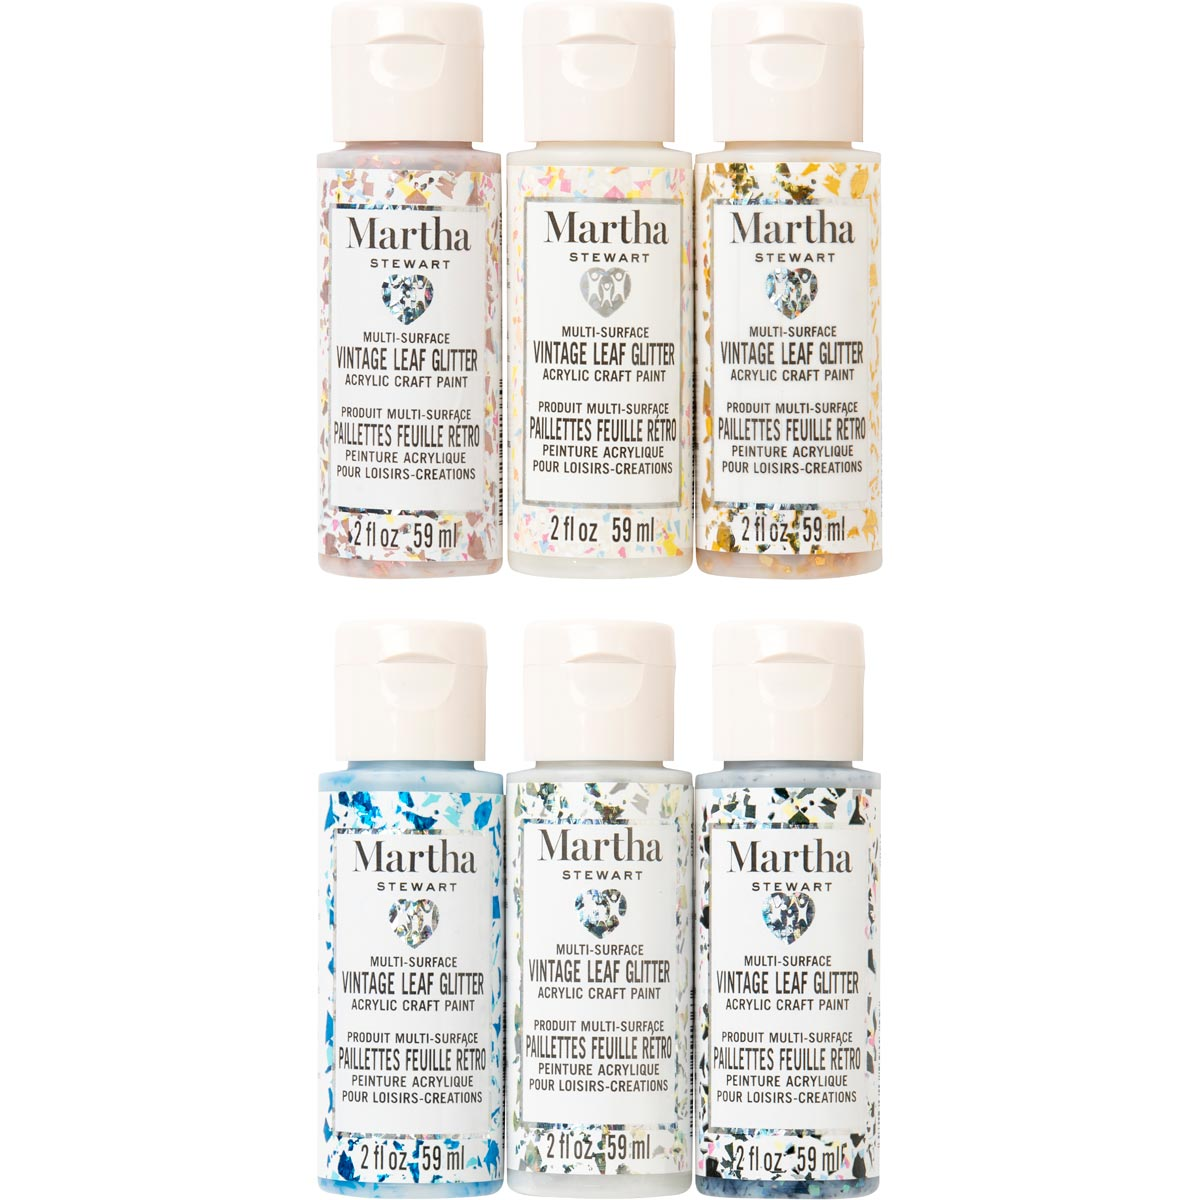 Martha Stewart ® Family Friendly Multi-Surface Vintage Leaf Glitter Acrylic Craft Paint 6-Color Set